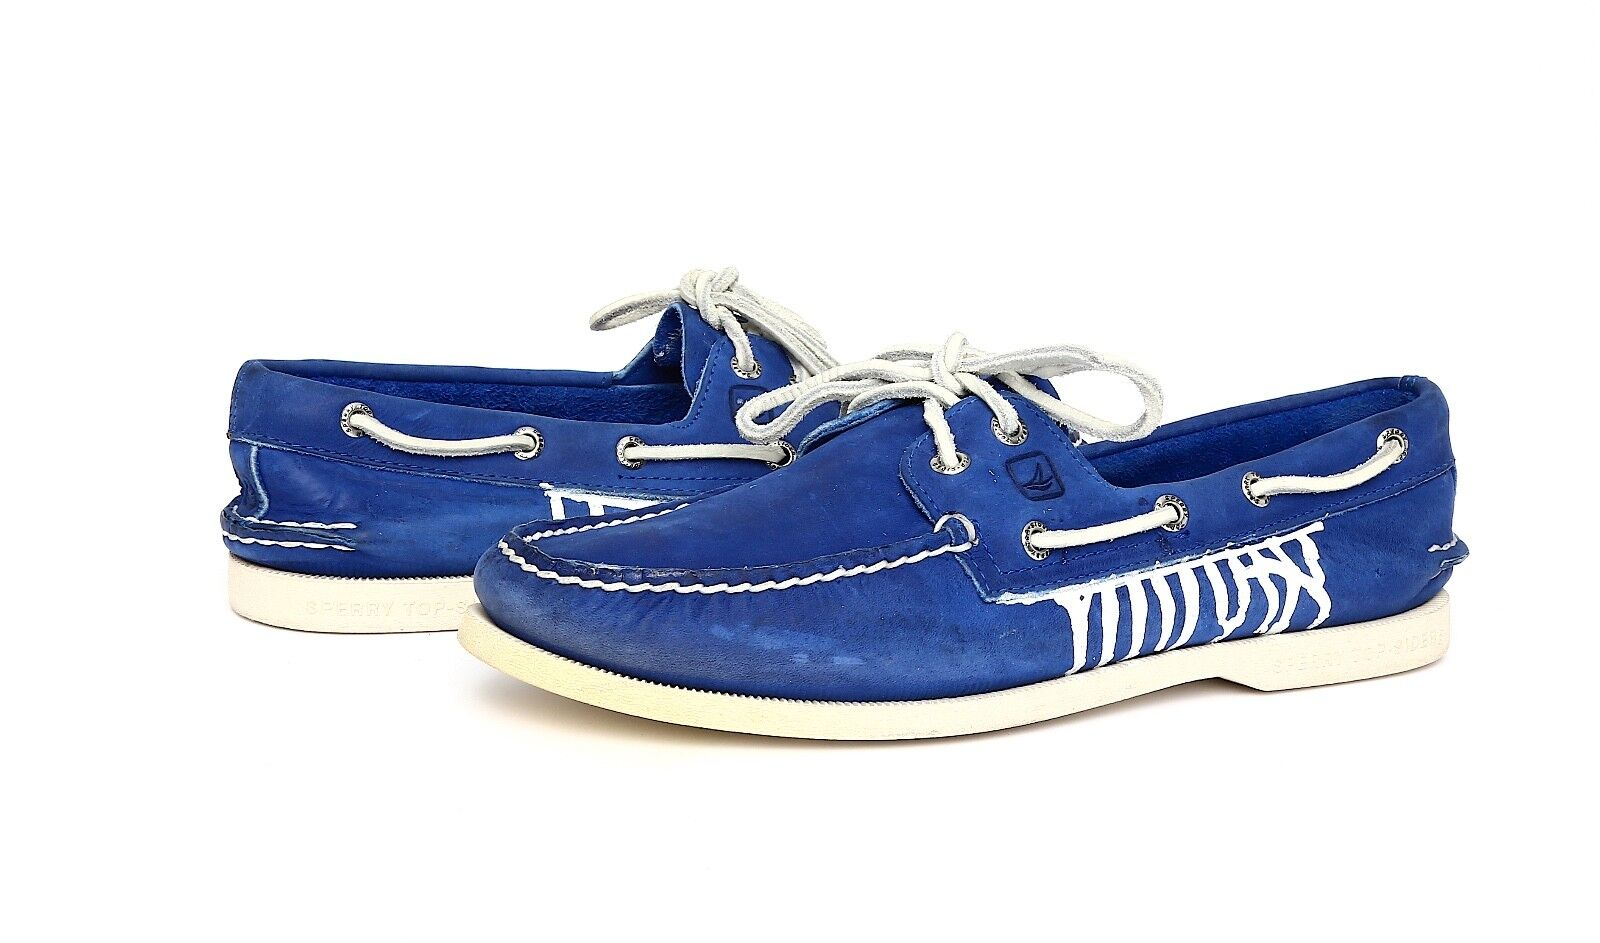 Sperry Top Sider Men's bluee Leather Authentic Original Eye Boat shoes Sz 9M 2194